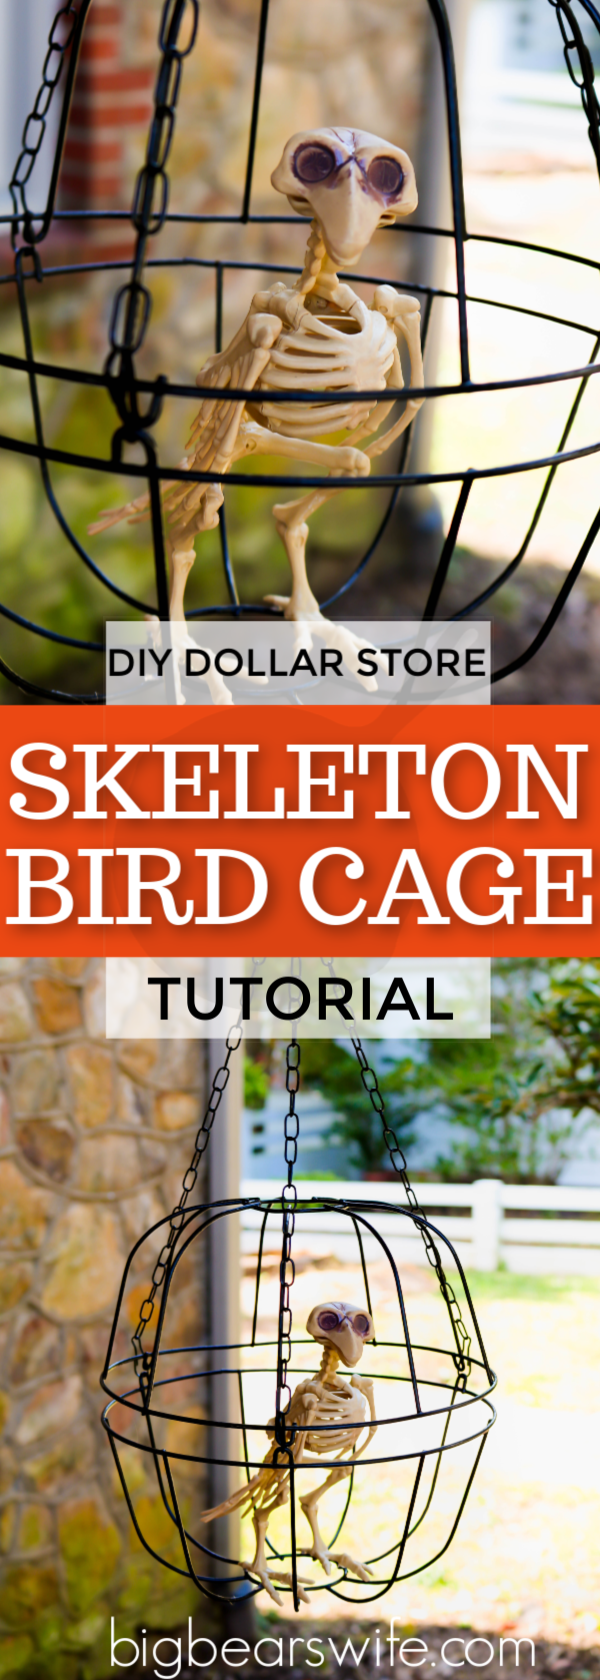 DIY Dollar Store Halloween Skeleton Bird Cage - Decorate on a budget with this easy dollar store DIY Halloween Skeleton Bird cage. This fun DIY Halloween craft cost $3 to make and yourDIY Dollar Store Halloween Skeleton Bird cage will look perfectly creepy outside or inside this Halloween! #DollarStoreDIY #DollarStoreHalloweenCraft #HalloweenCraft